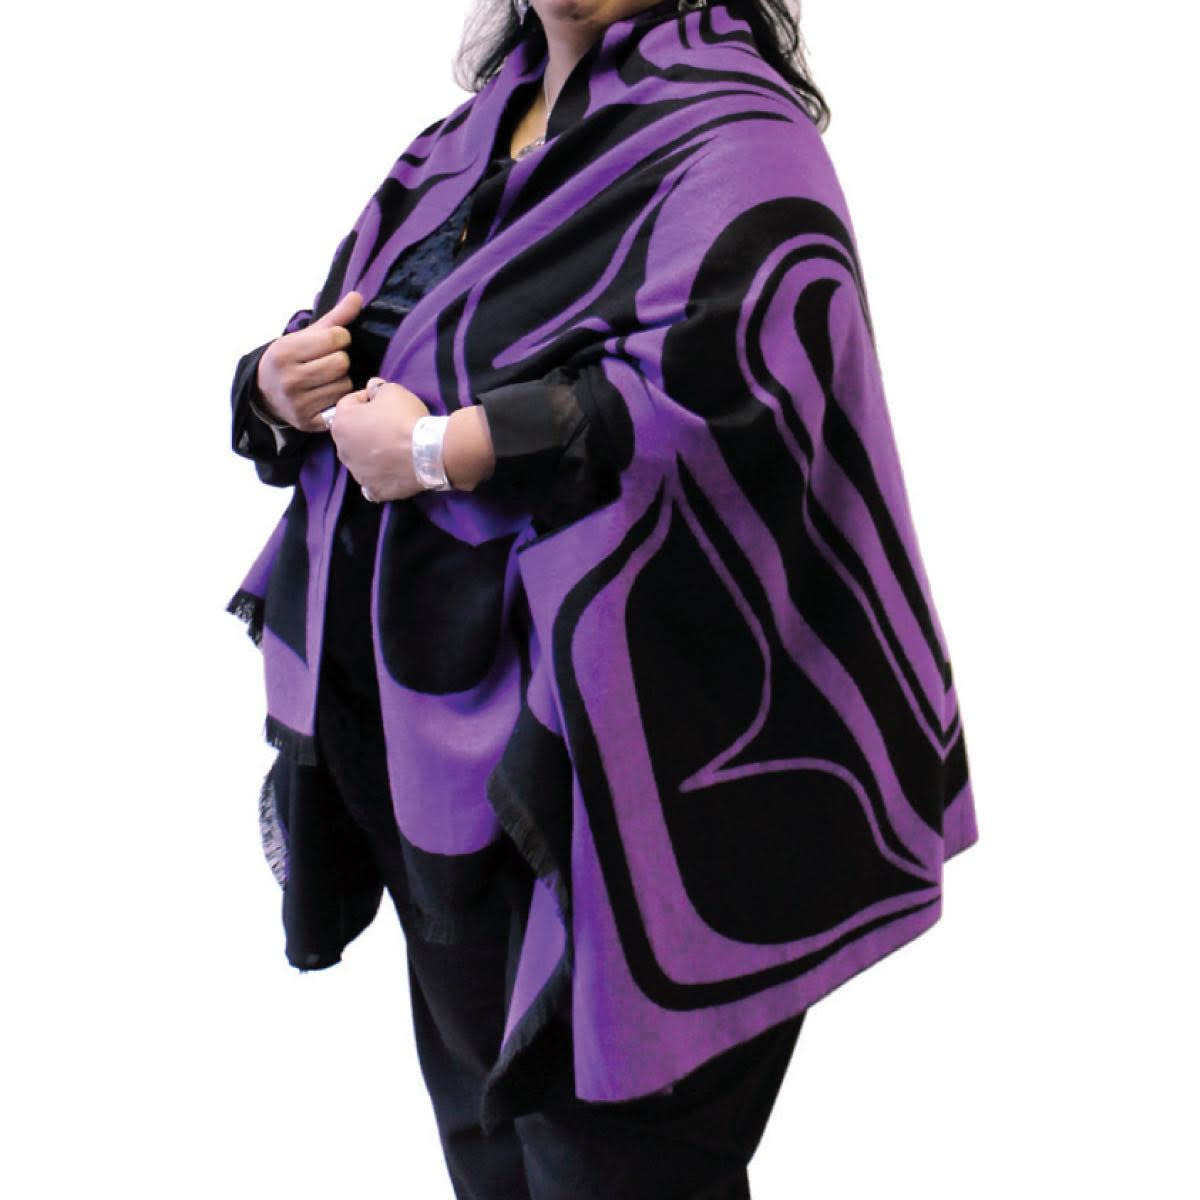 Reversible Fashion Cape- Eagle by Roger Smith-1